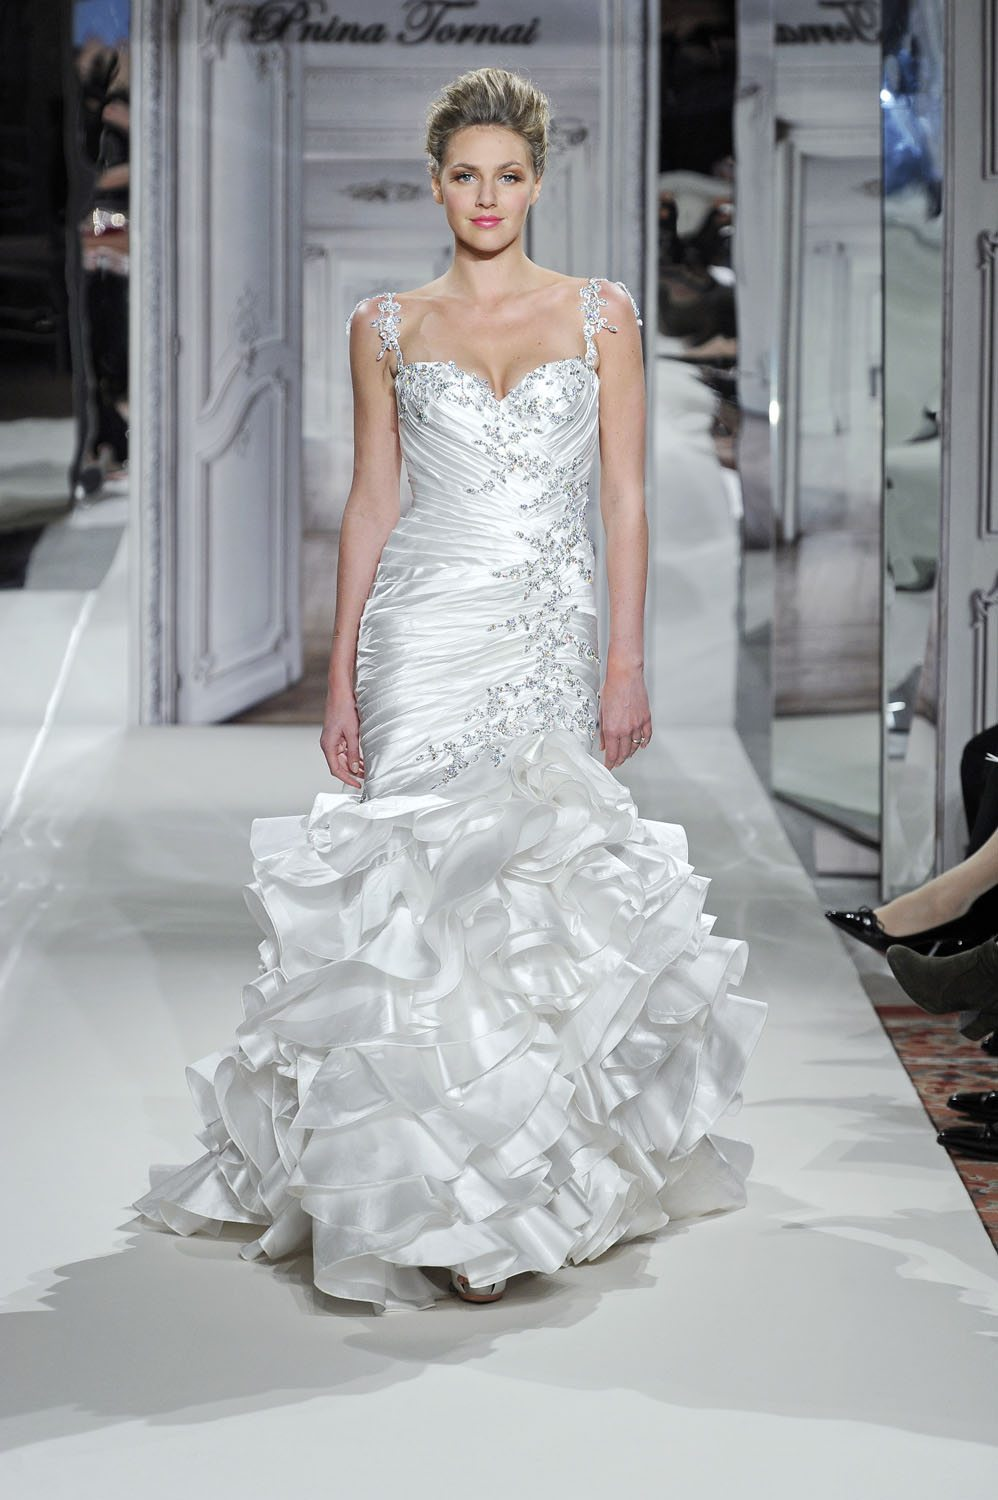 Pnina tornai for kleinfeld 2014 wedding dresses weddingbells junglespirit Choice Image